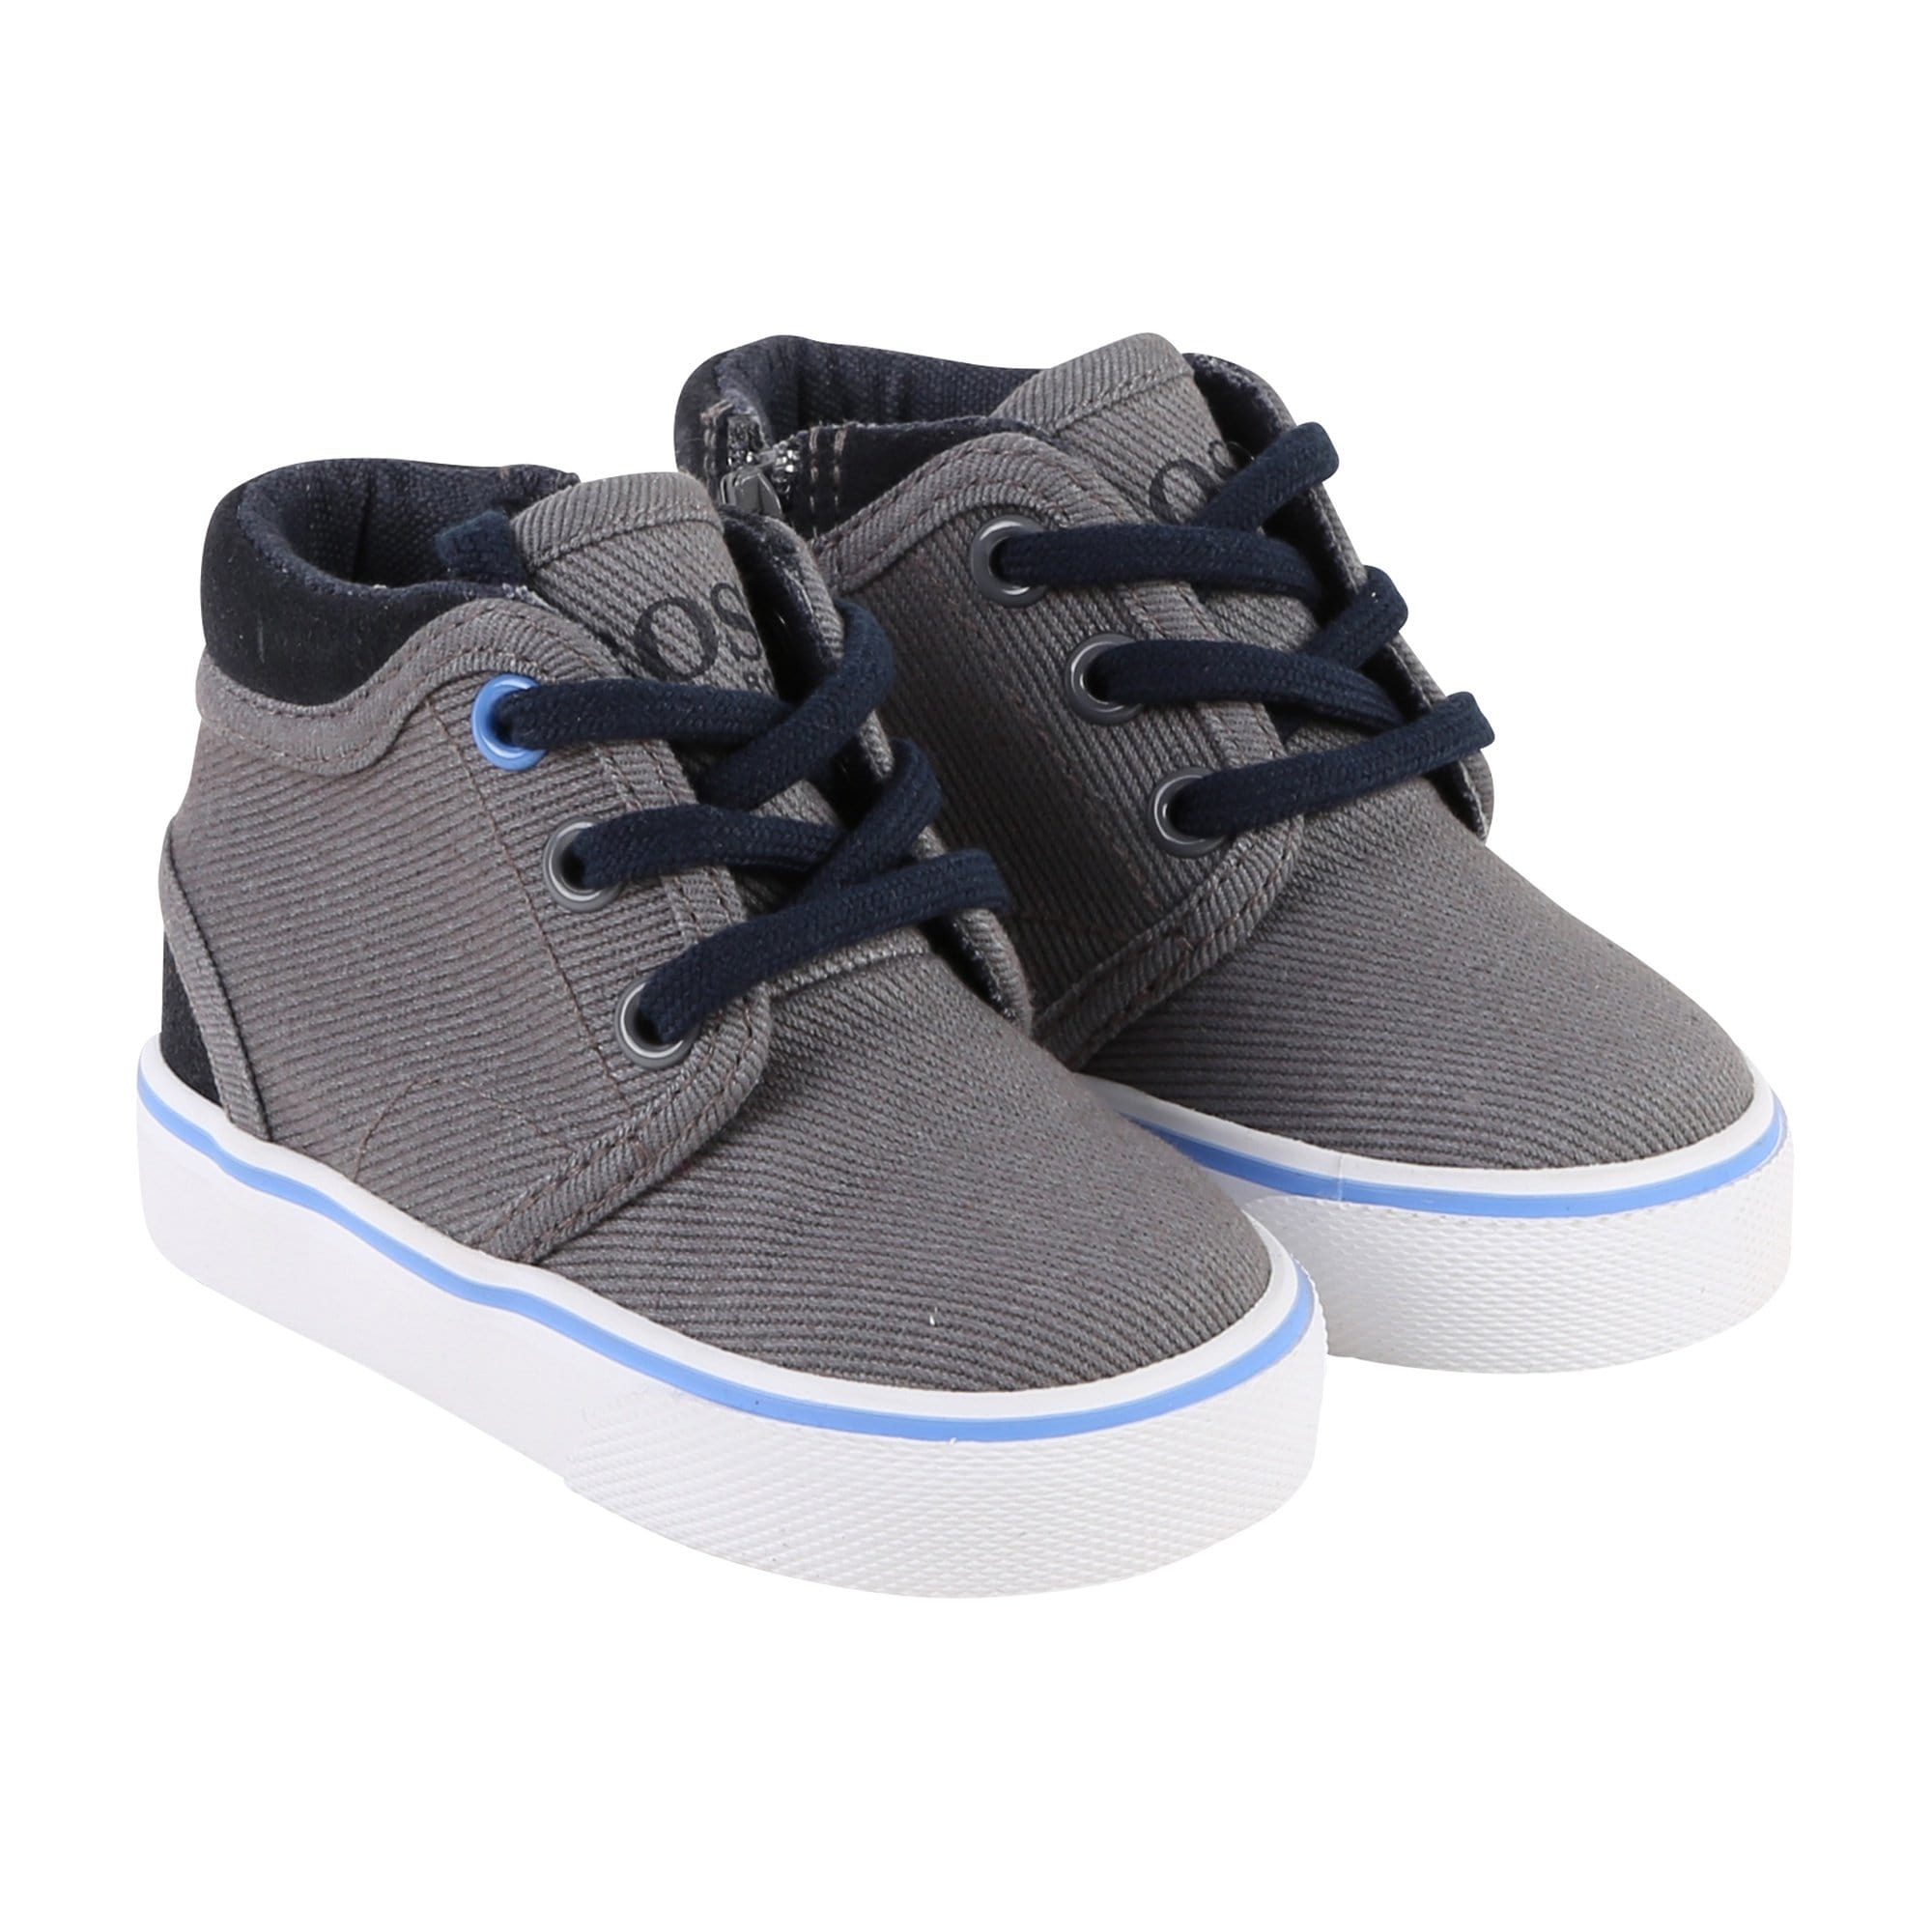 Hugo Boss Titanium High Tops Younger Boys (4703549292675)